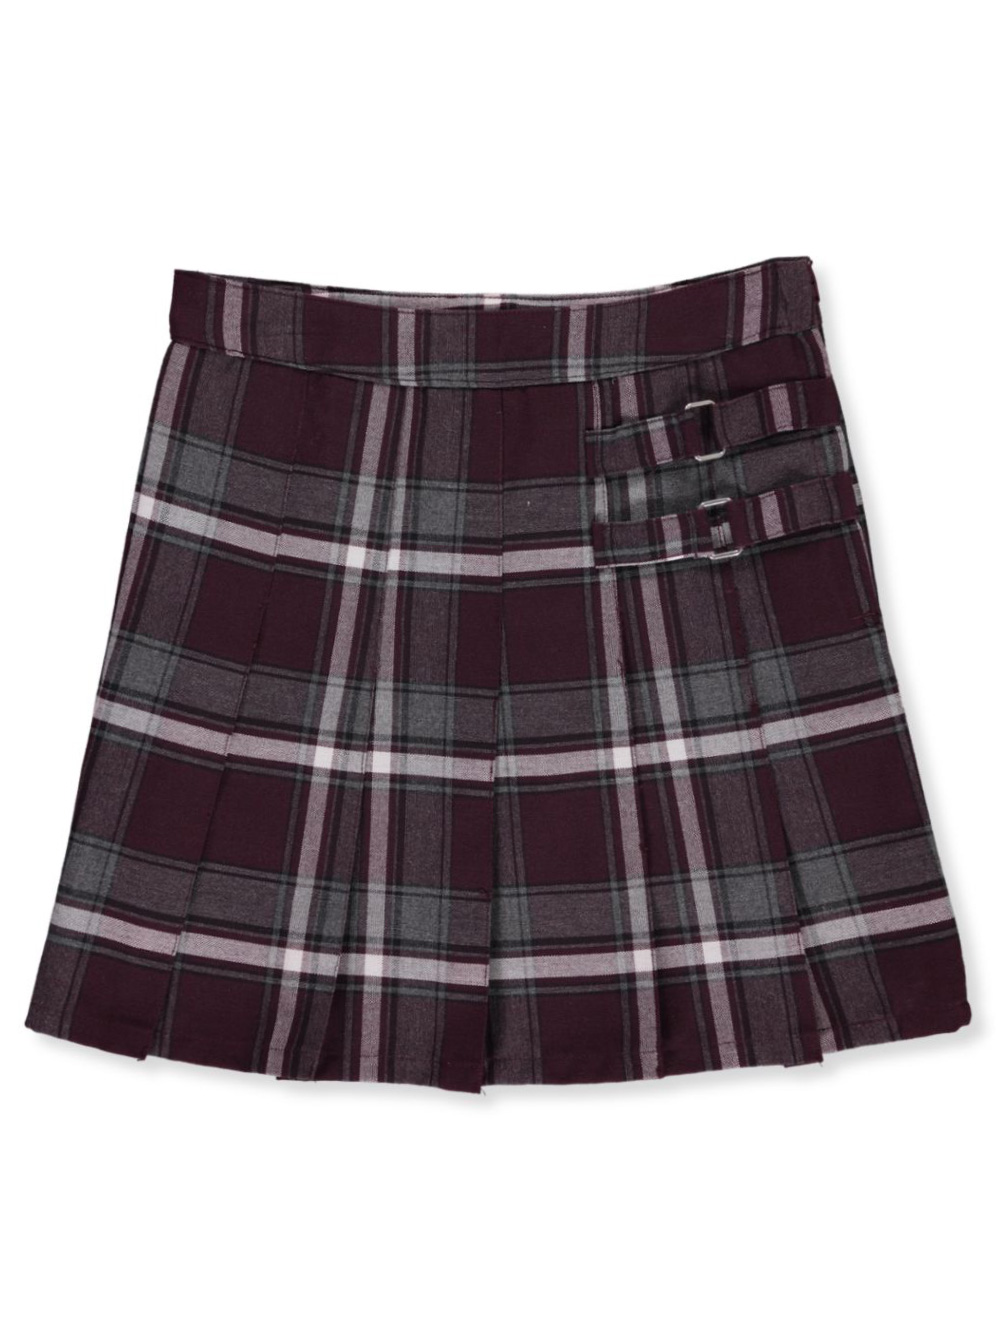 Plaid Scooter Skirt